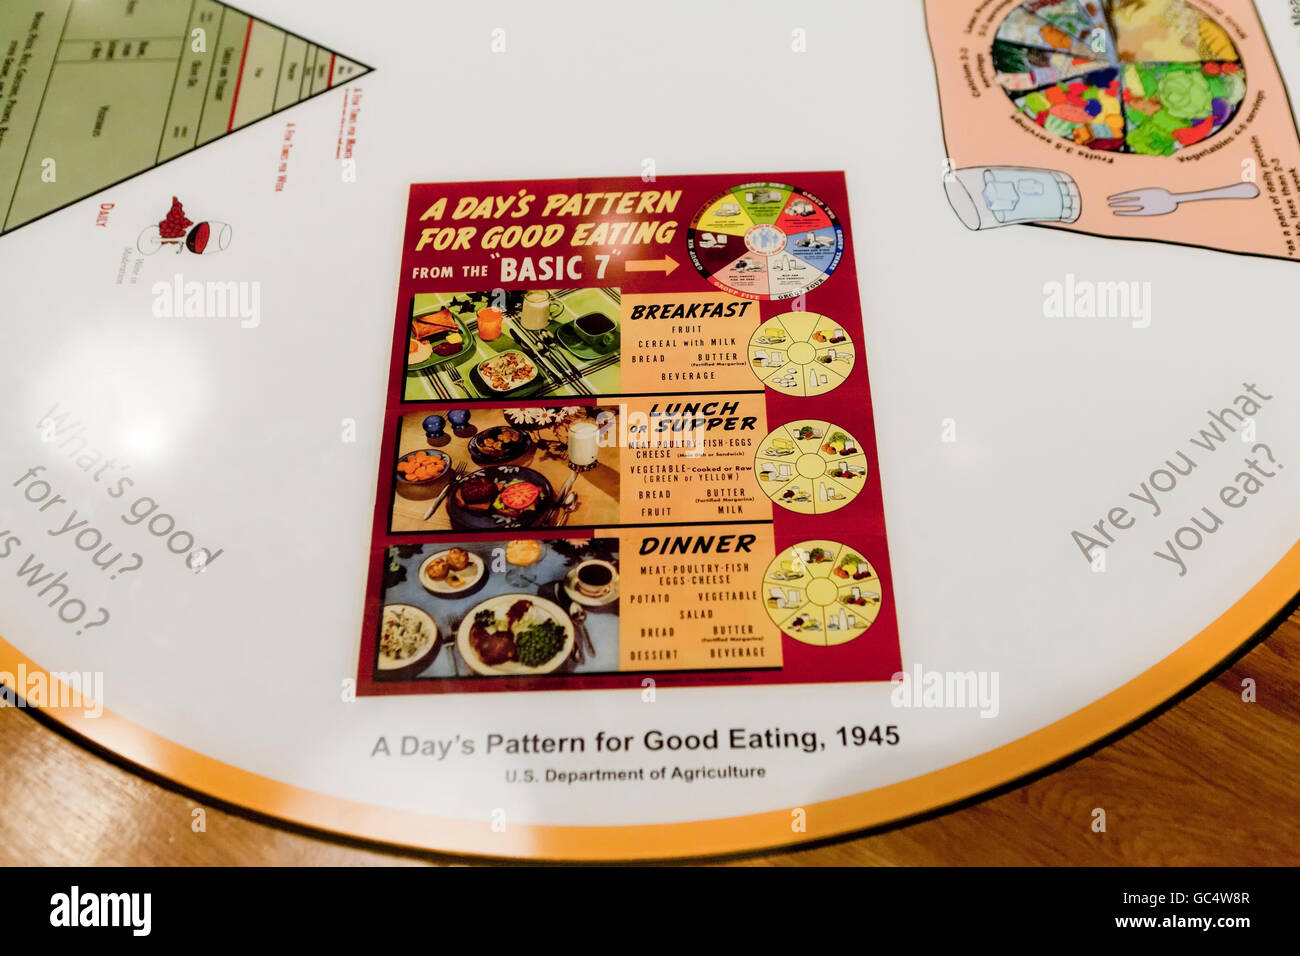 US Department of Agriculture's A Day's Pattern for Good Eating from the Basic 7 illustration - USA - Stock Image